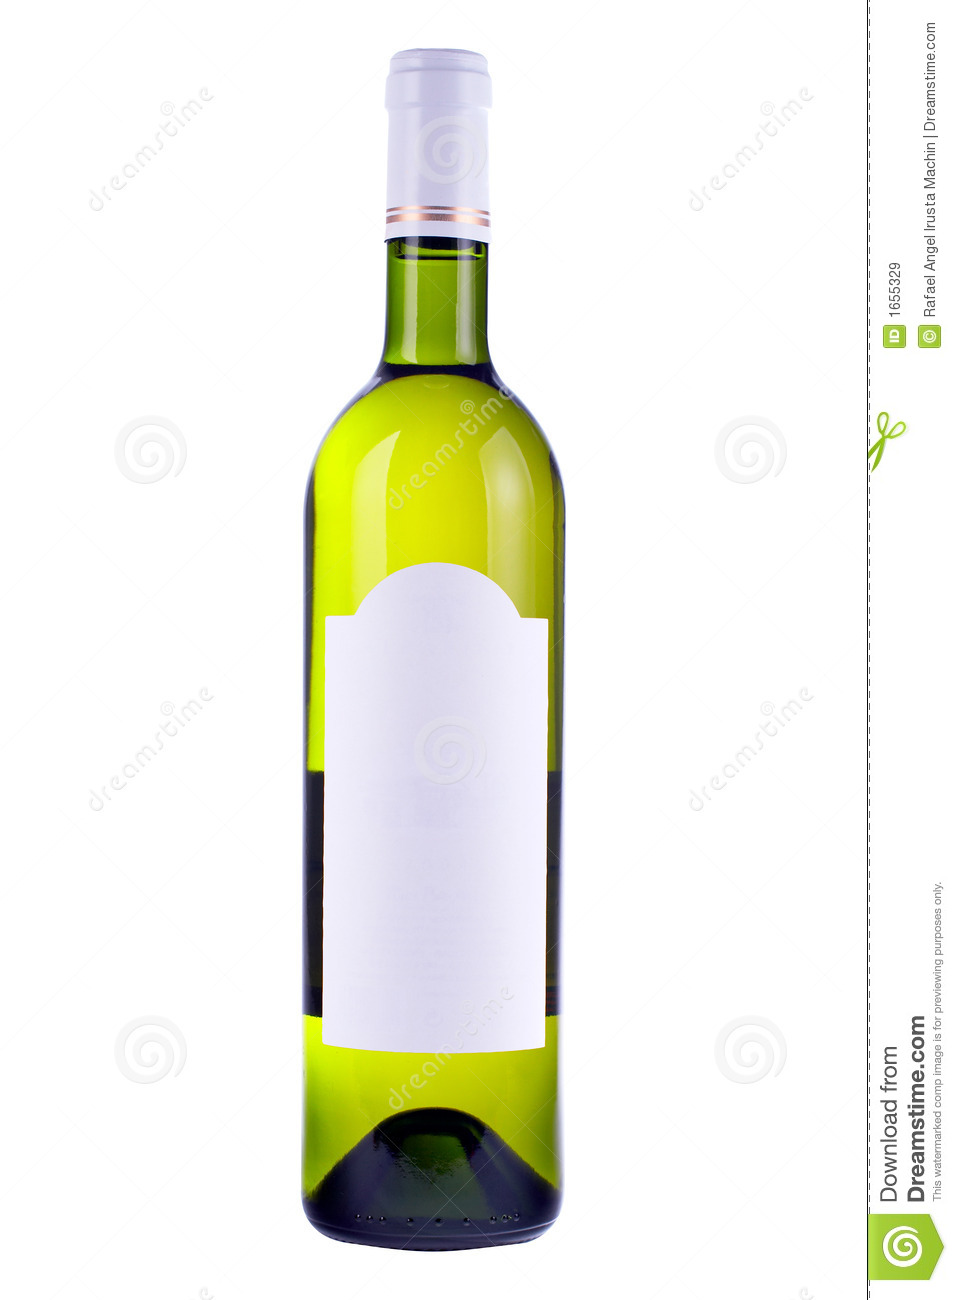 Wine Bottle With Blank Label Stock Image - Image: 1655329